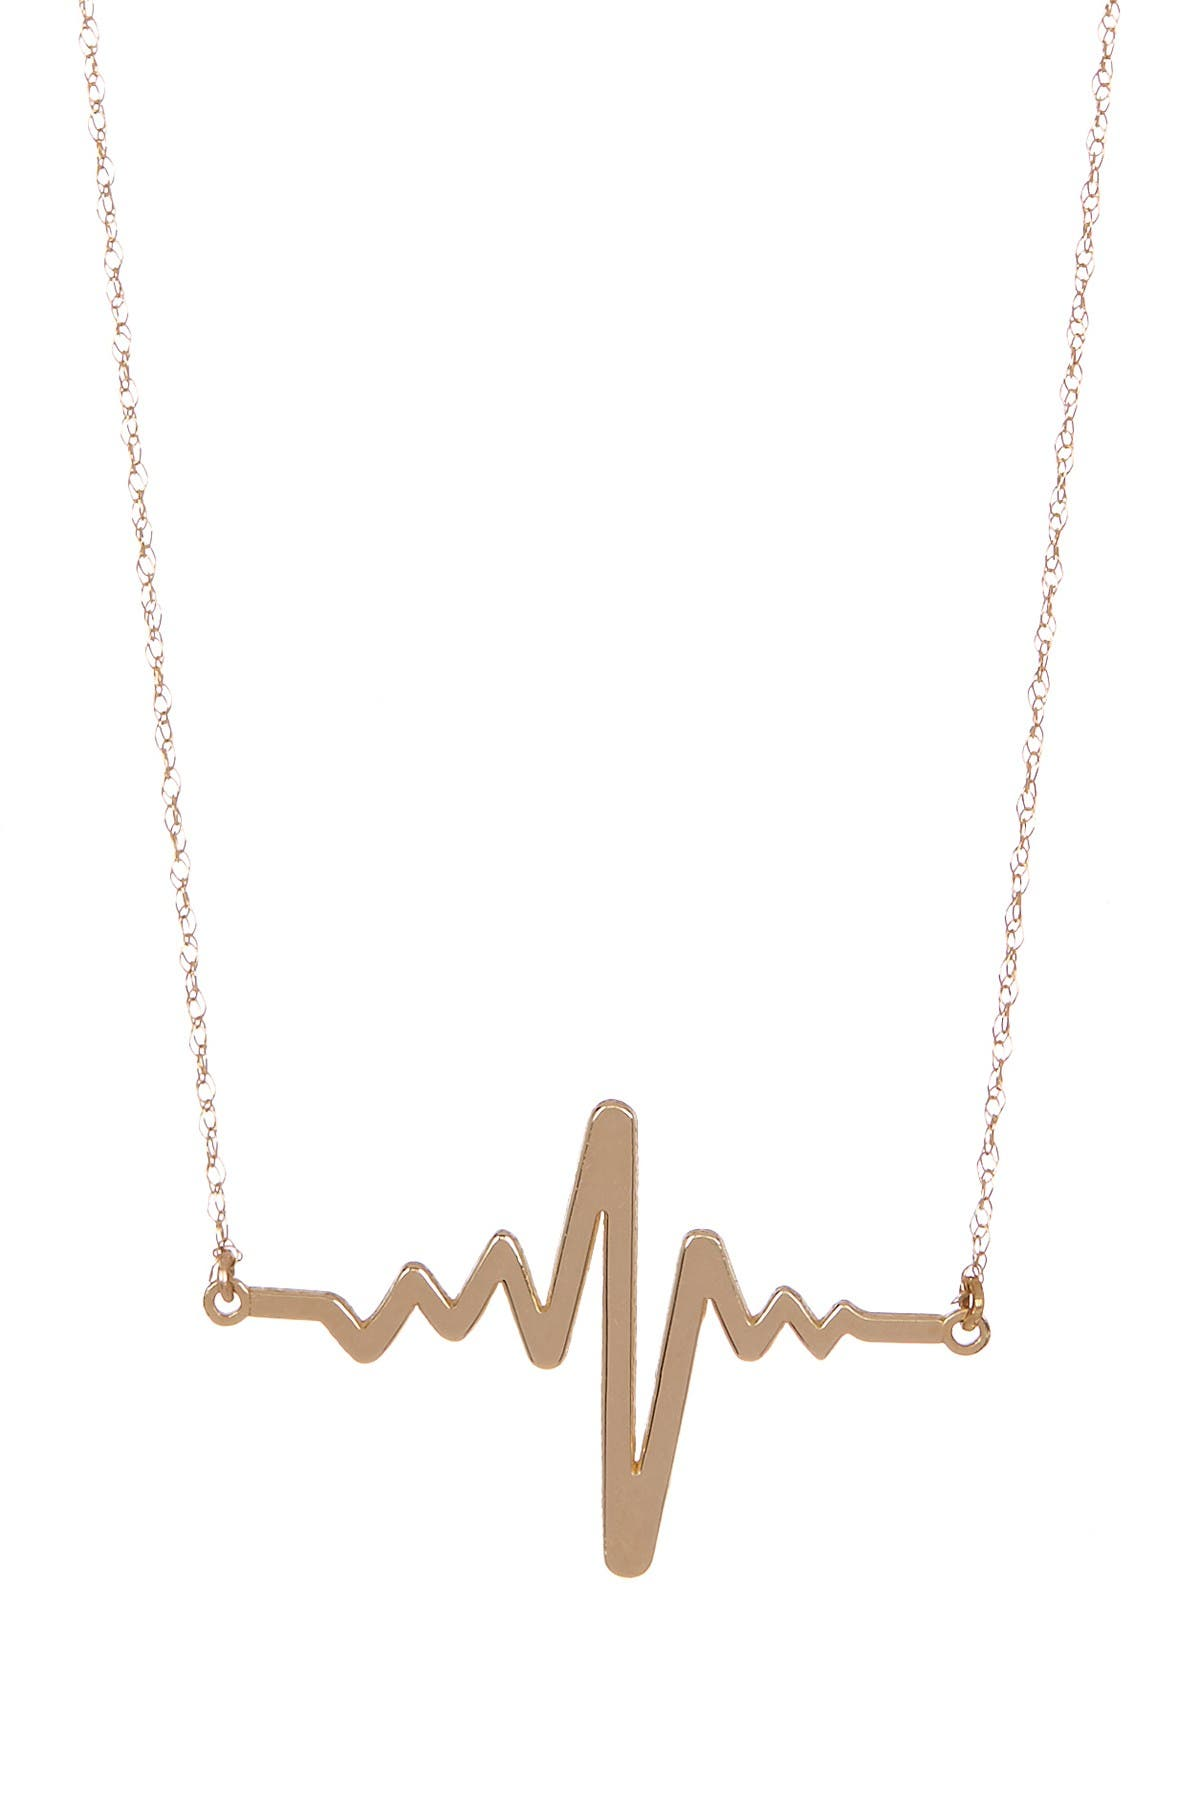 Image of Candela 10K Yellow Gold Heartbeat Necklace